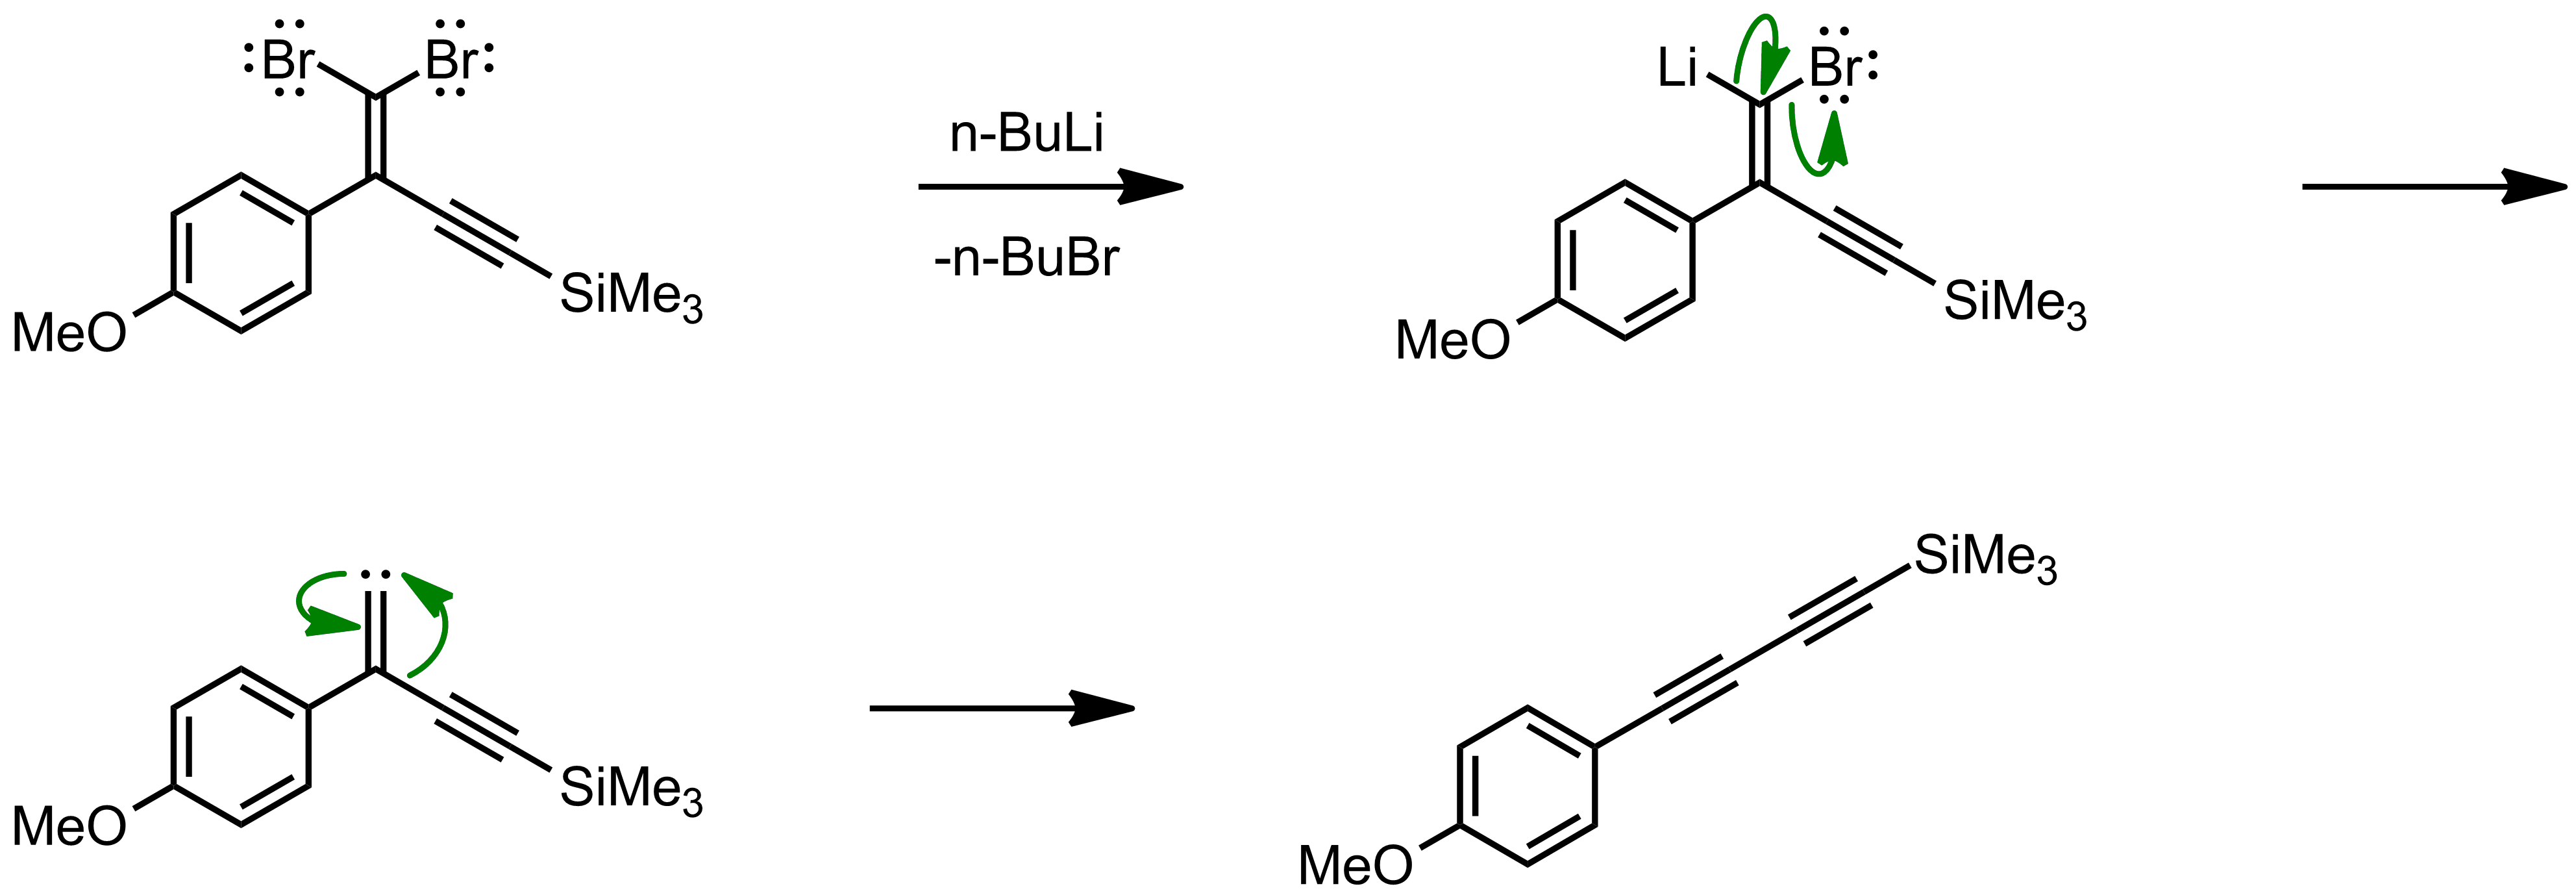 Mechanism of the Fritsch-Buttenberg-Wiechell Rearrangement